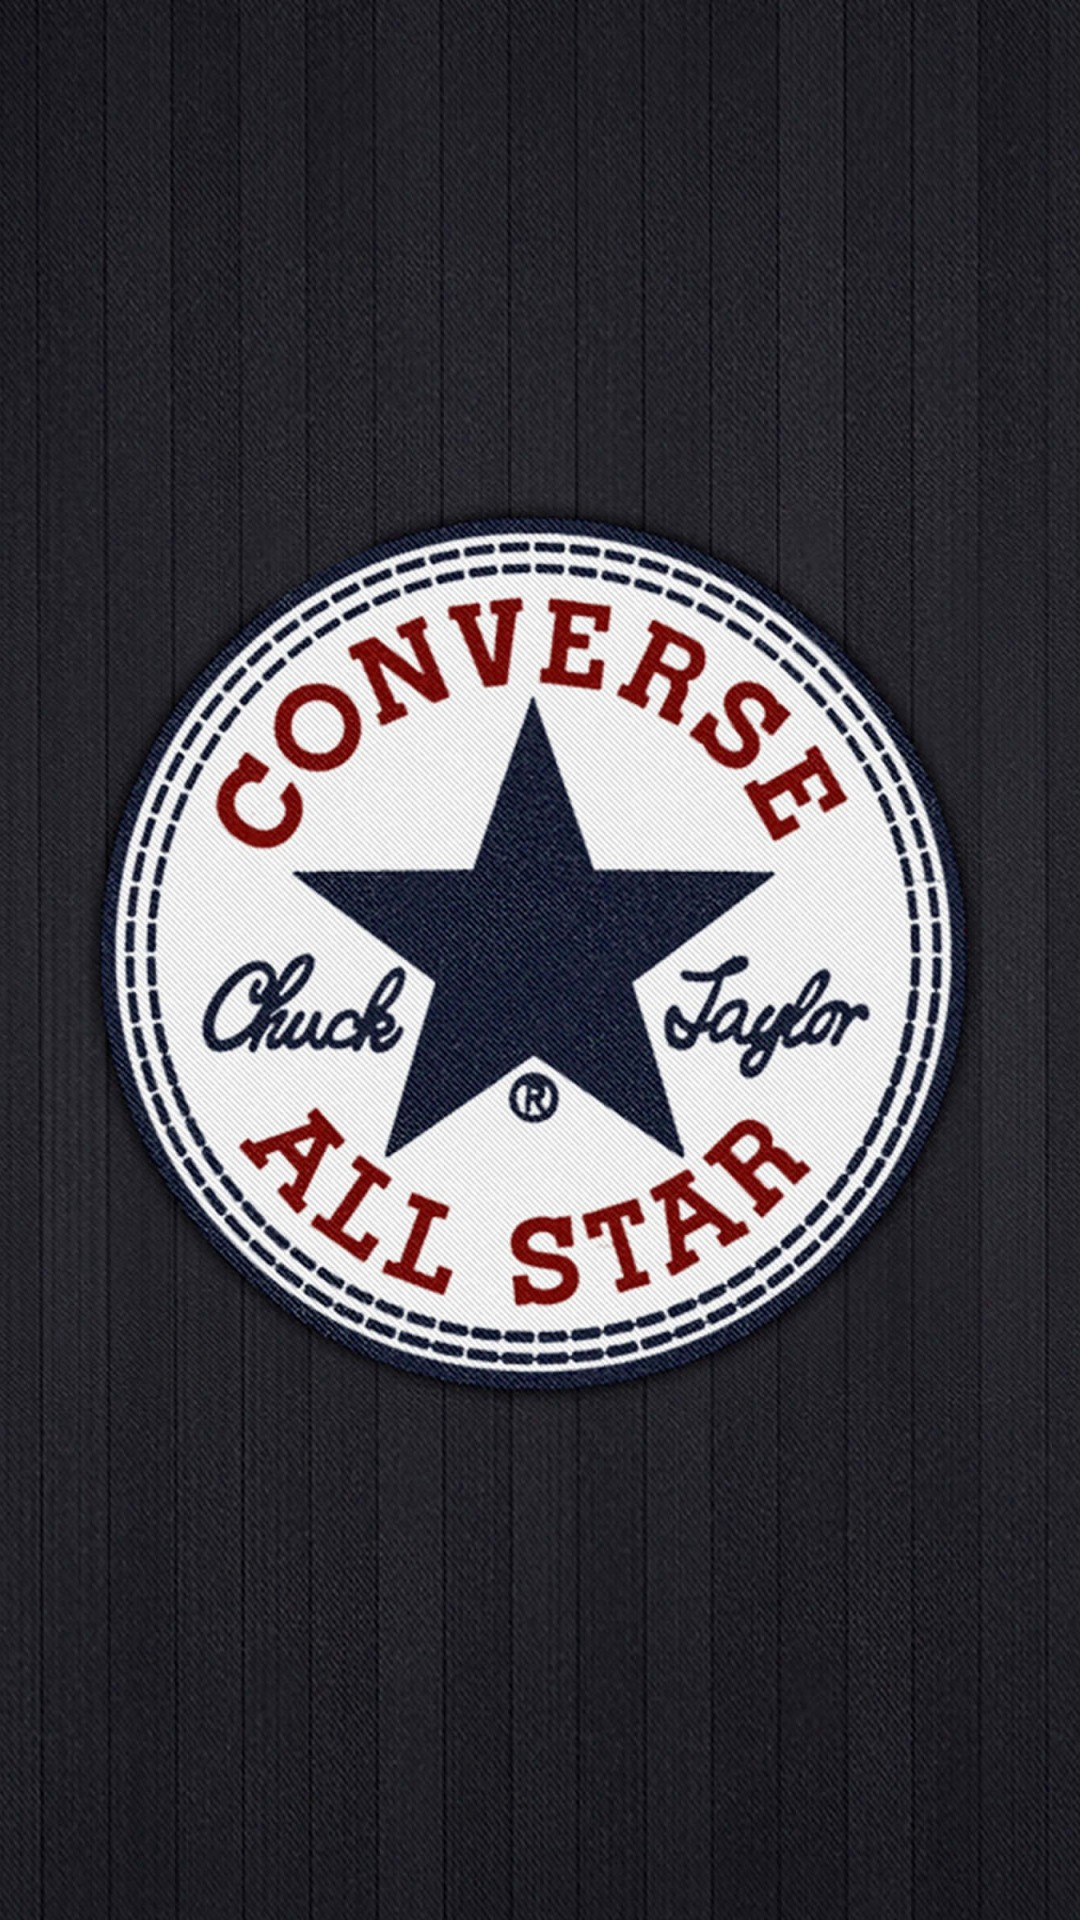 Converse All Star Wallpaper for Google Nexus 5